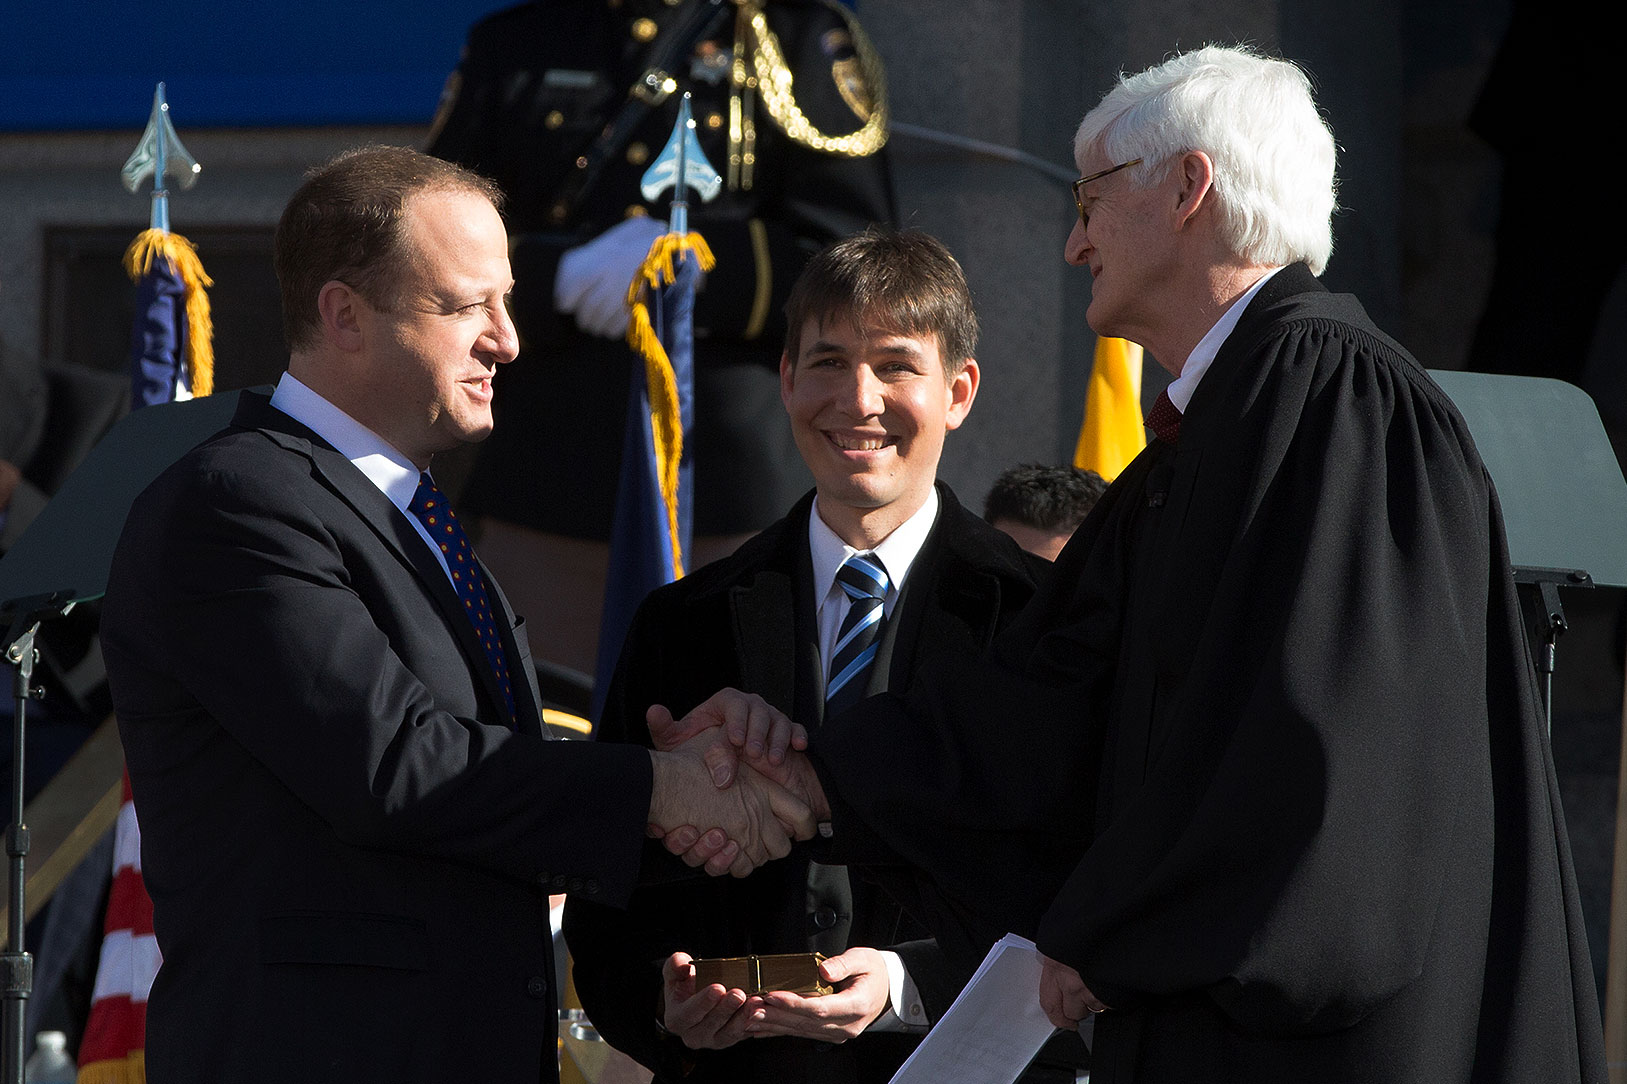 Jared Polis, accompanied by his husband Marlon Reis, takes the oath of office for governor administered by Colorado Supreme Court Chief Justice Nathan B. Coats on Jan. 8. Polis is the country's first openly gay man to be elected as any state's top executive.